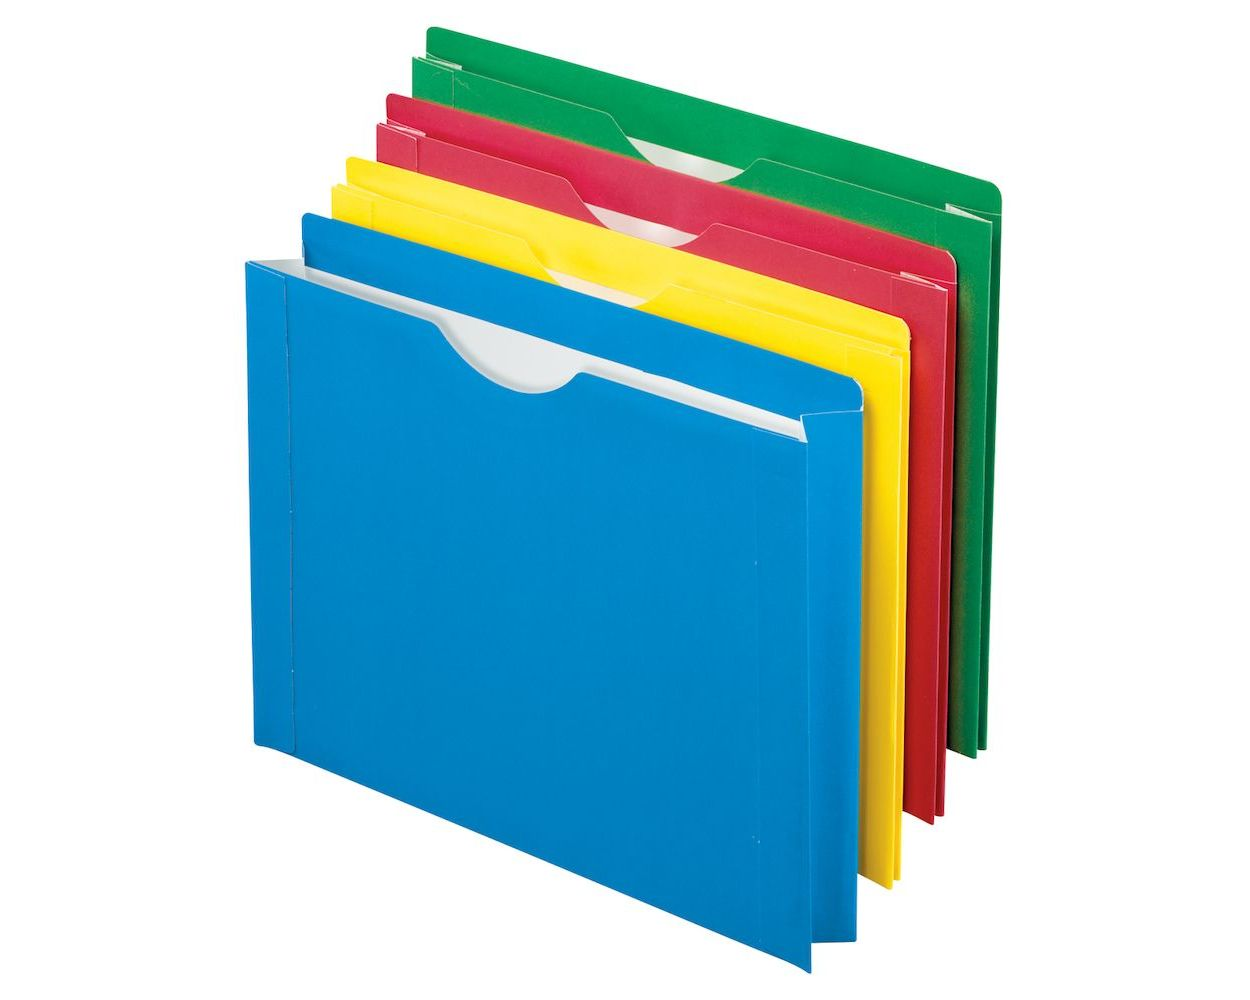 Wholesale Colored File Jackets: Discounts on Color Reinforced File Jackets, Letter size, Assorted PFX12003EE